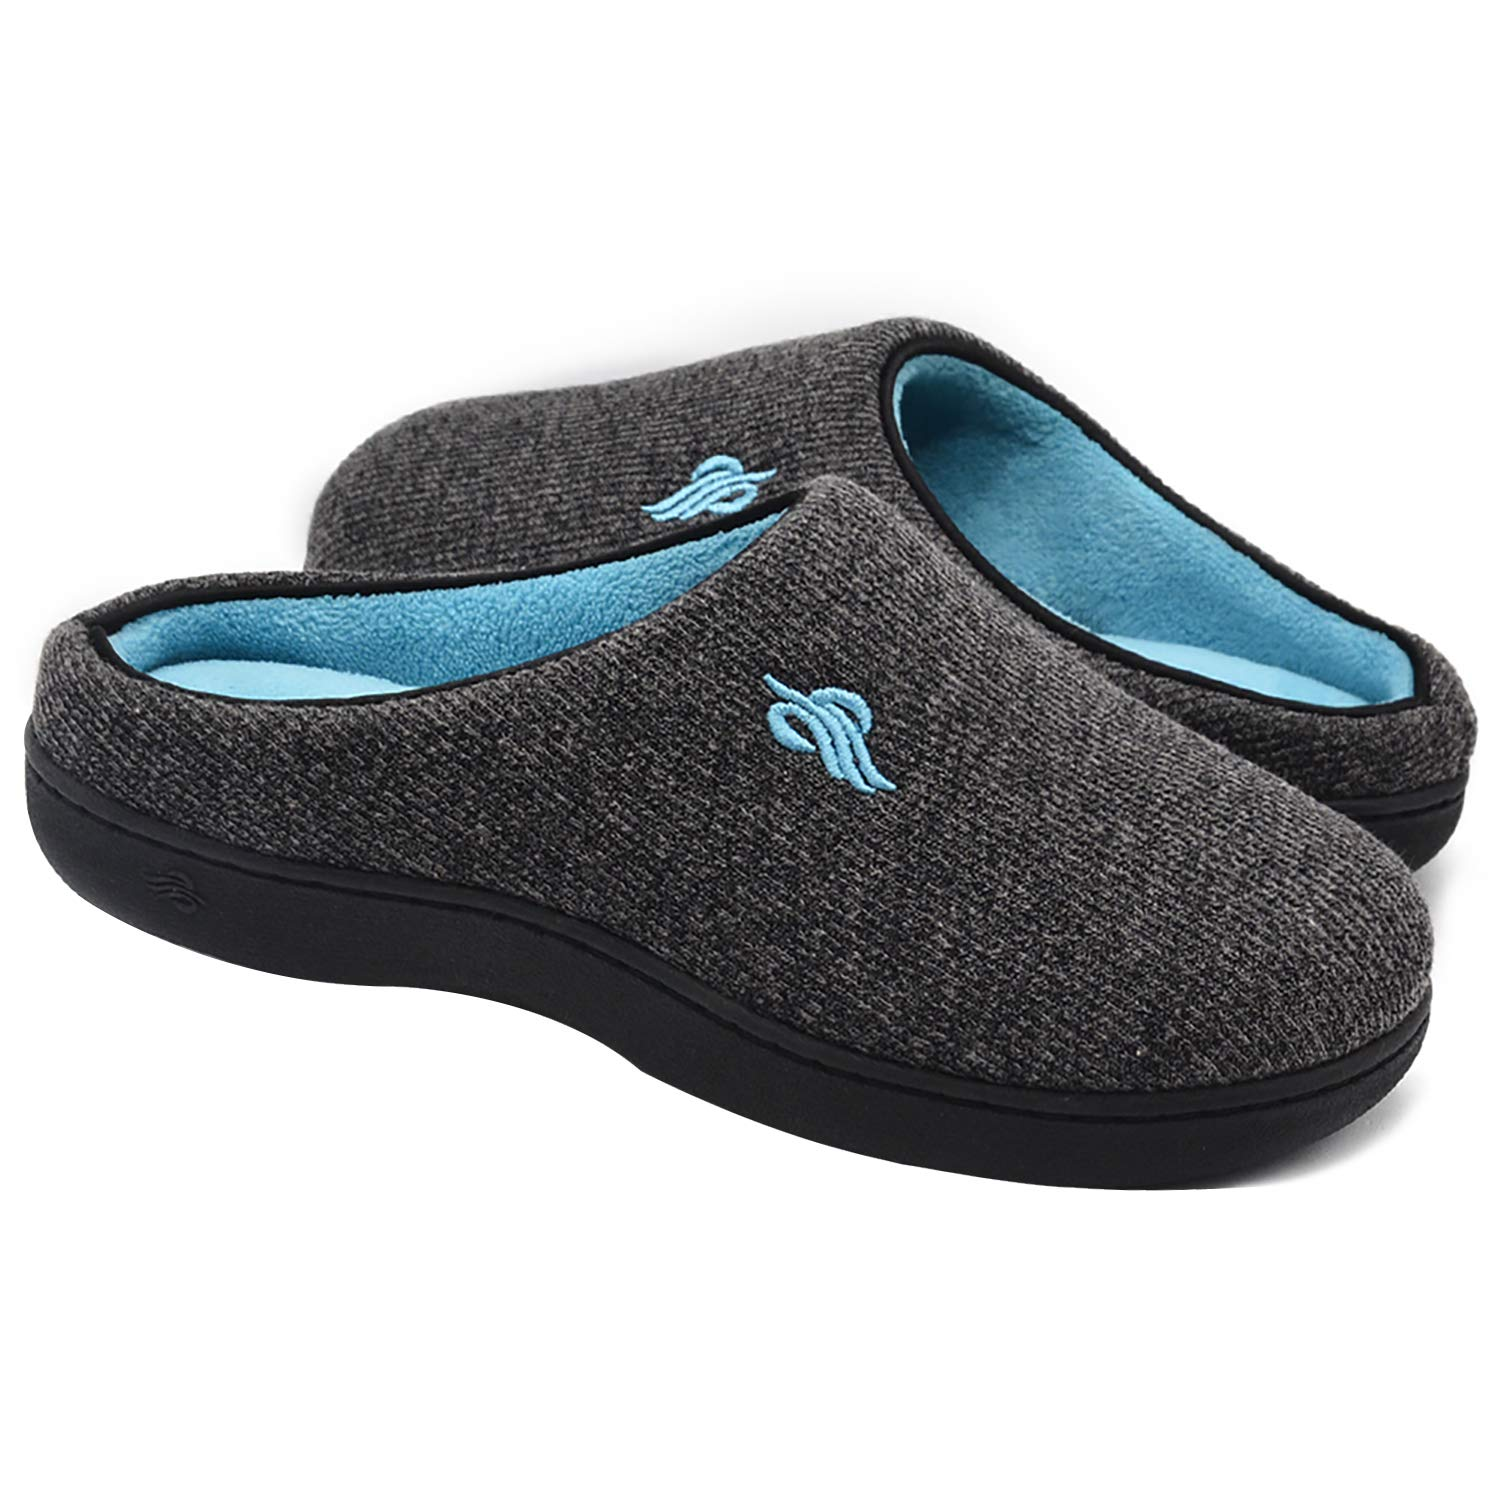 Wishcotton Women's Contrast Color Warm Cotton Slippers with Arch Support Winter Breathable Indoor/Outdoor House Shoes (L, Dark Grey)